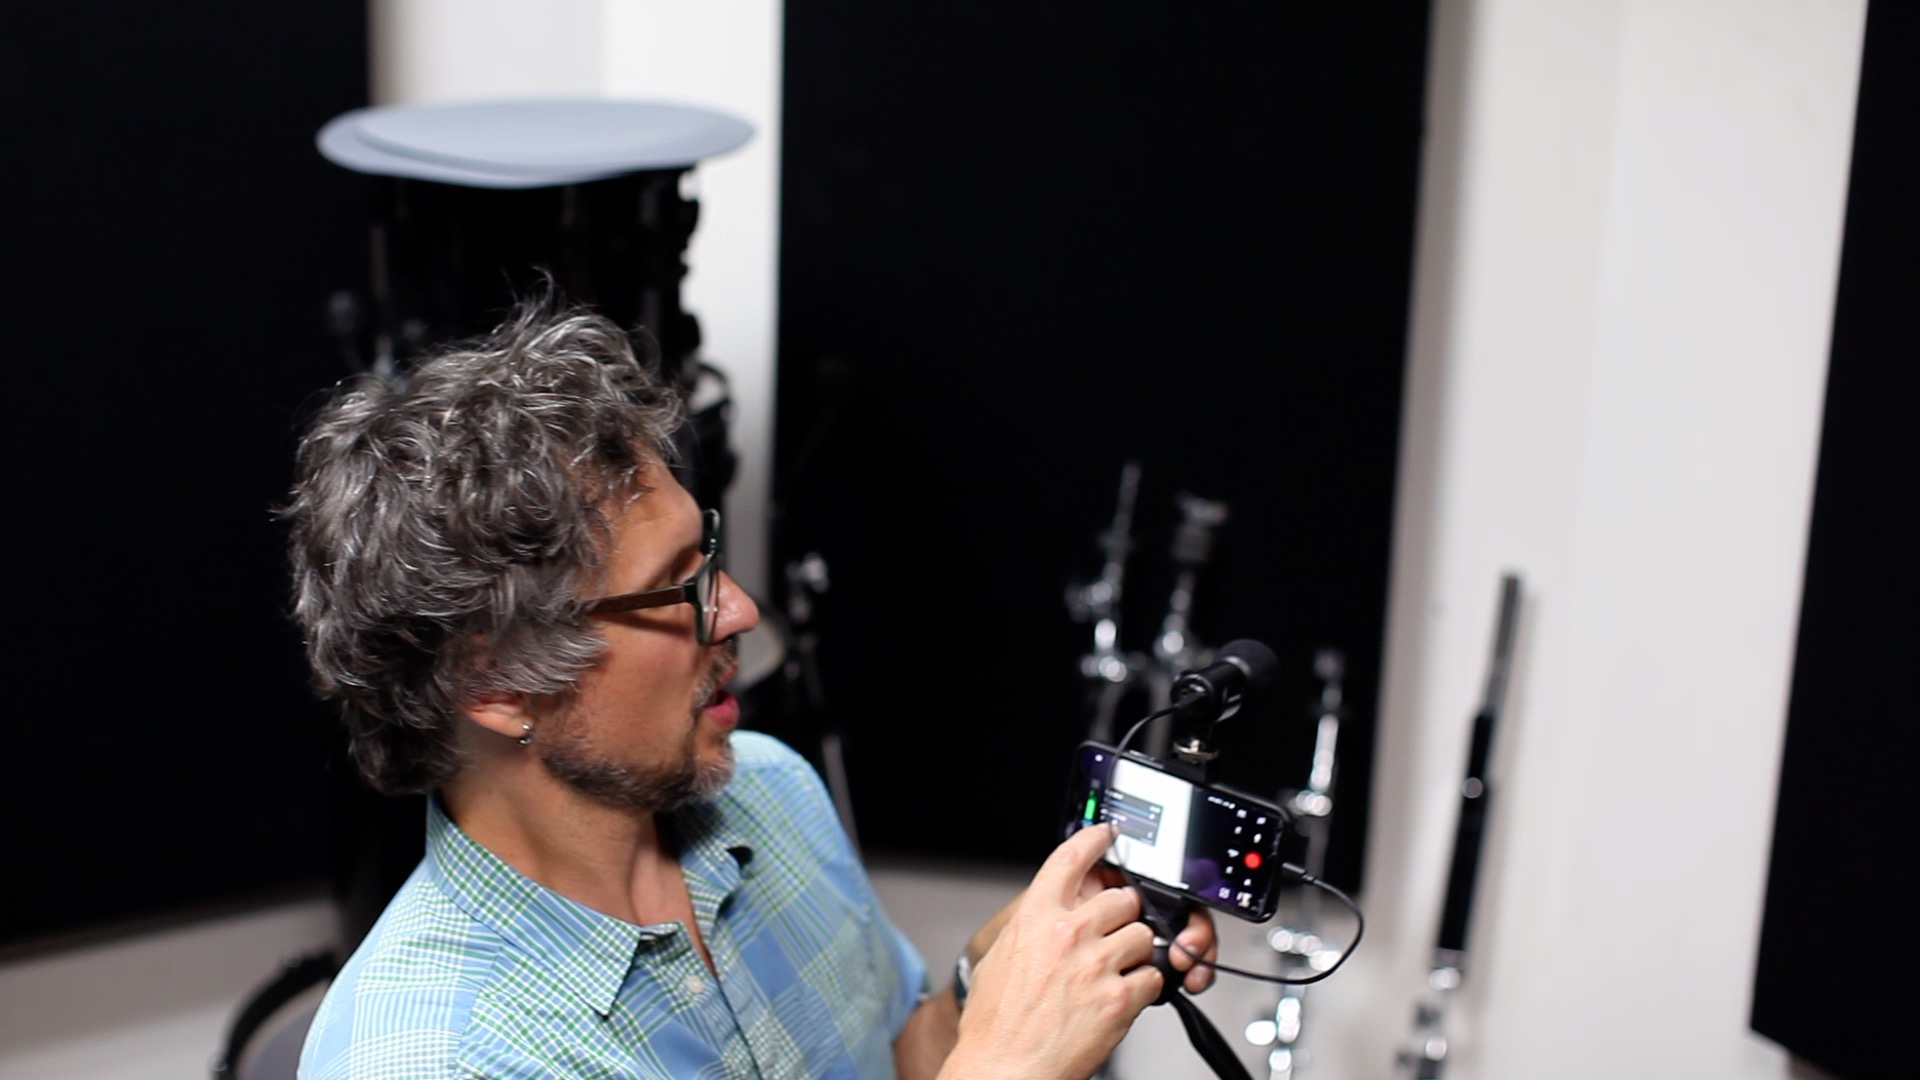 Product Review Series #1: Shure MV88 Video Kit